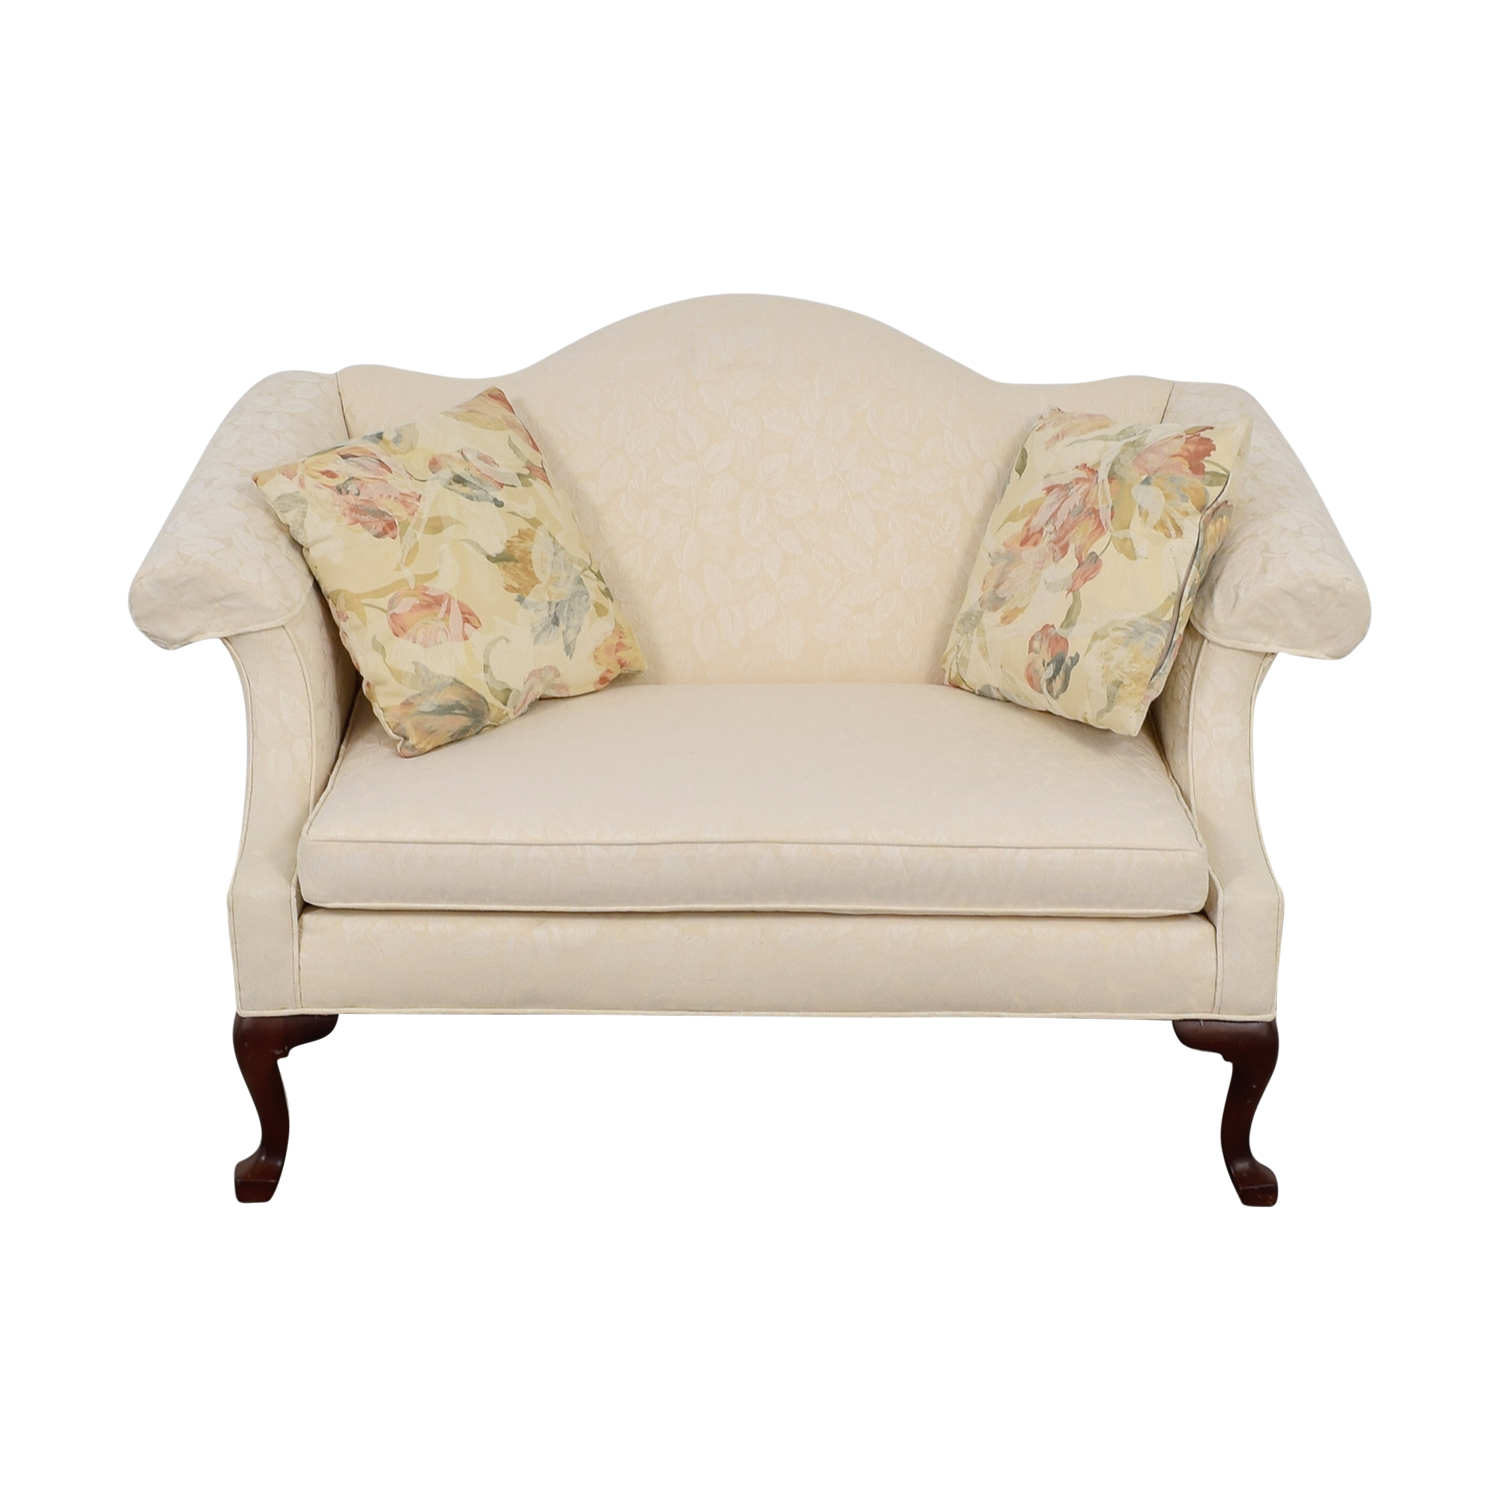 Ethan Allen Ethan Allen White Love Seat with Floral Pillows nj